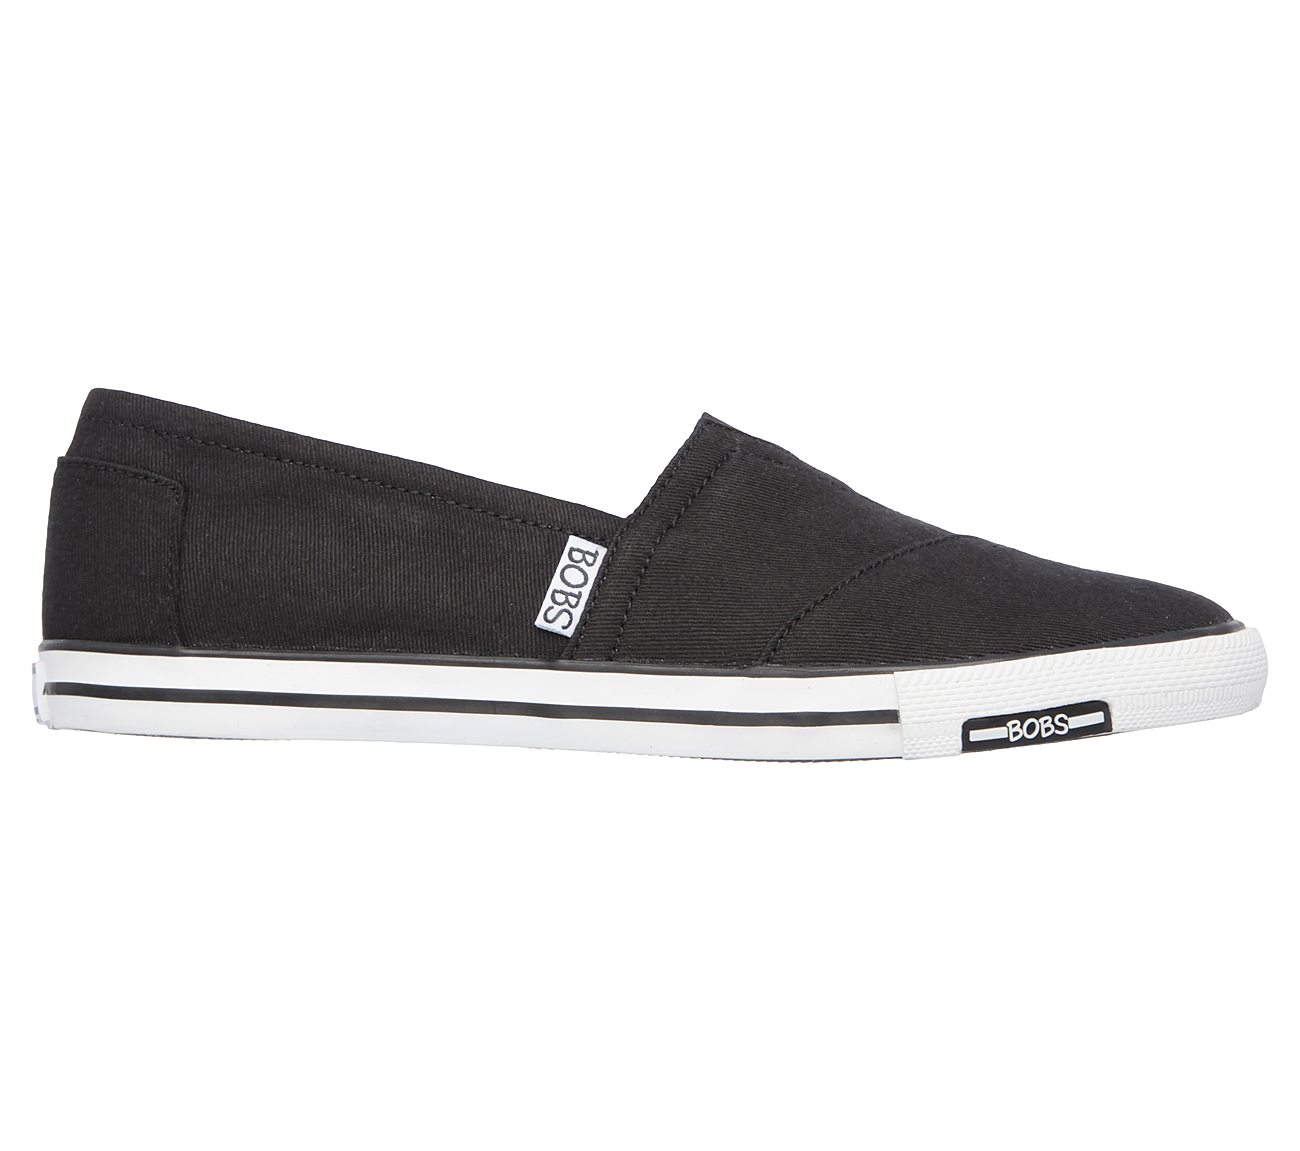 b93dc576af4 Buy SKECHERS Bobs Lo-Topia - Pleasantville BOBS Shoes only  27.00